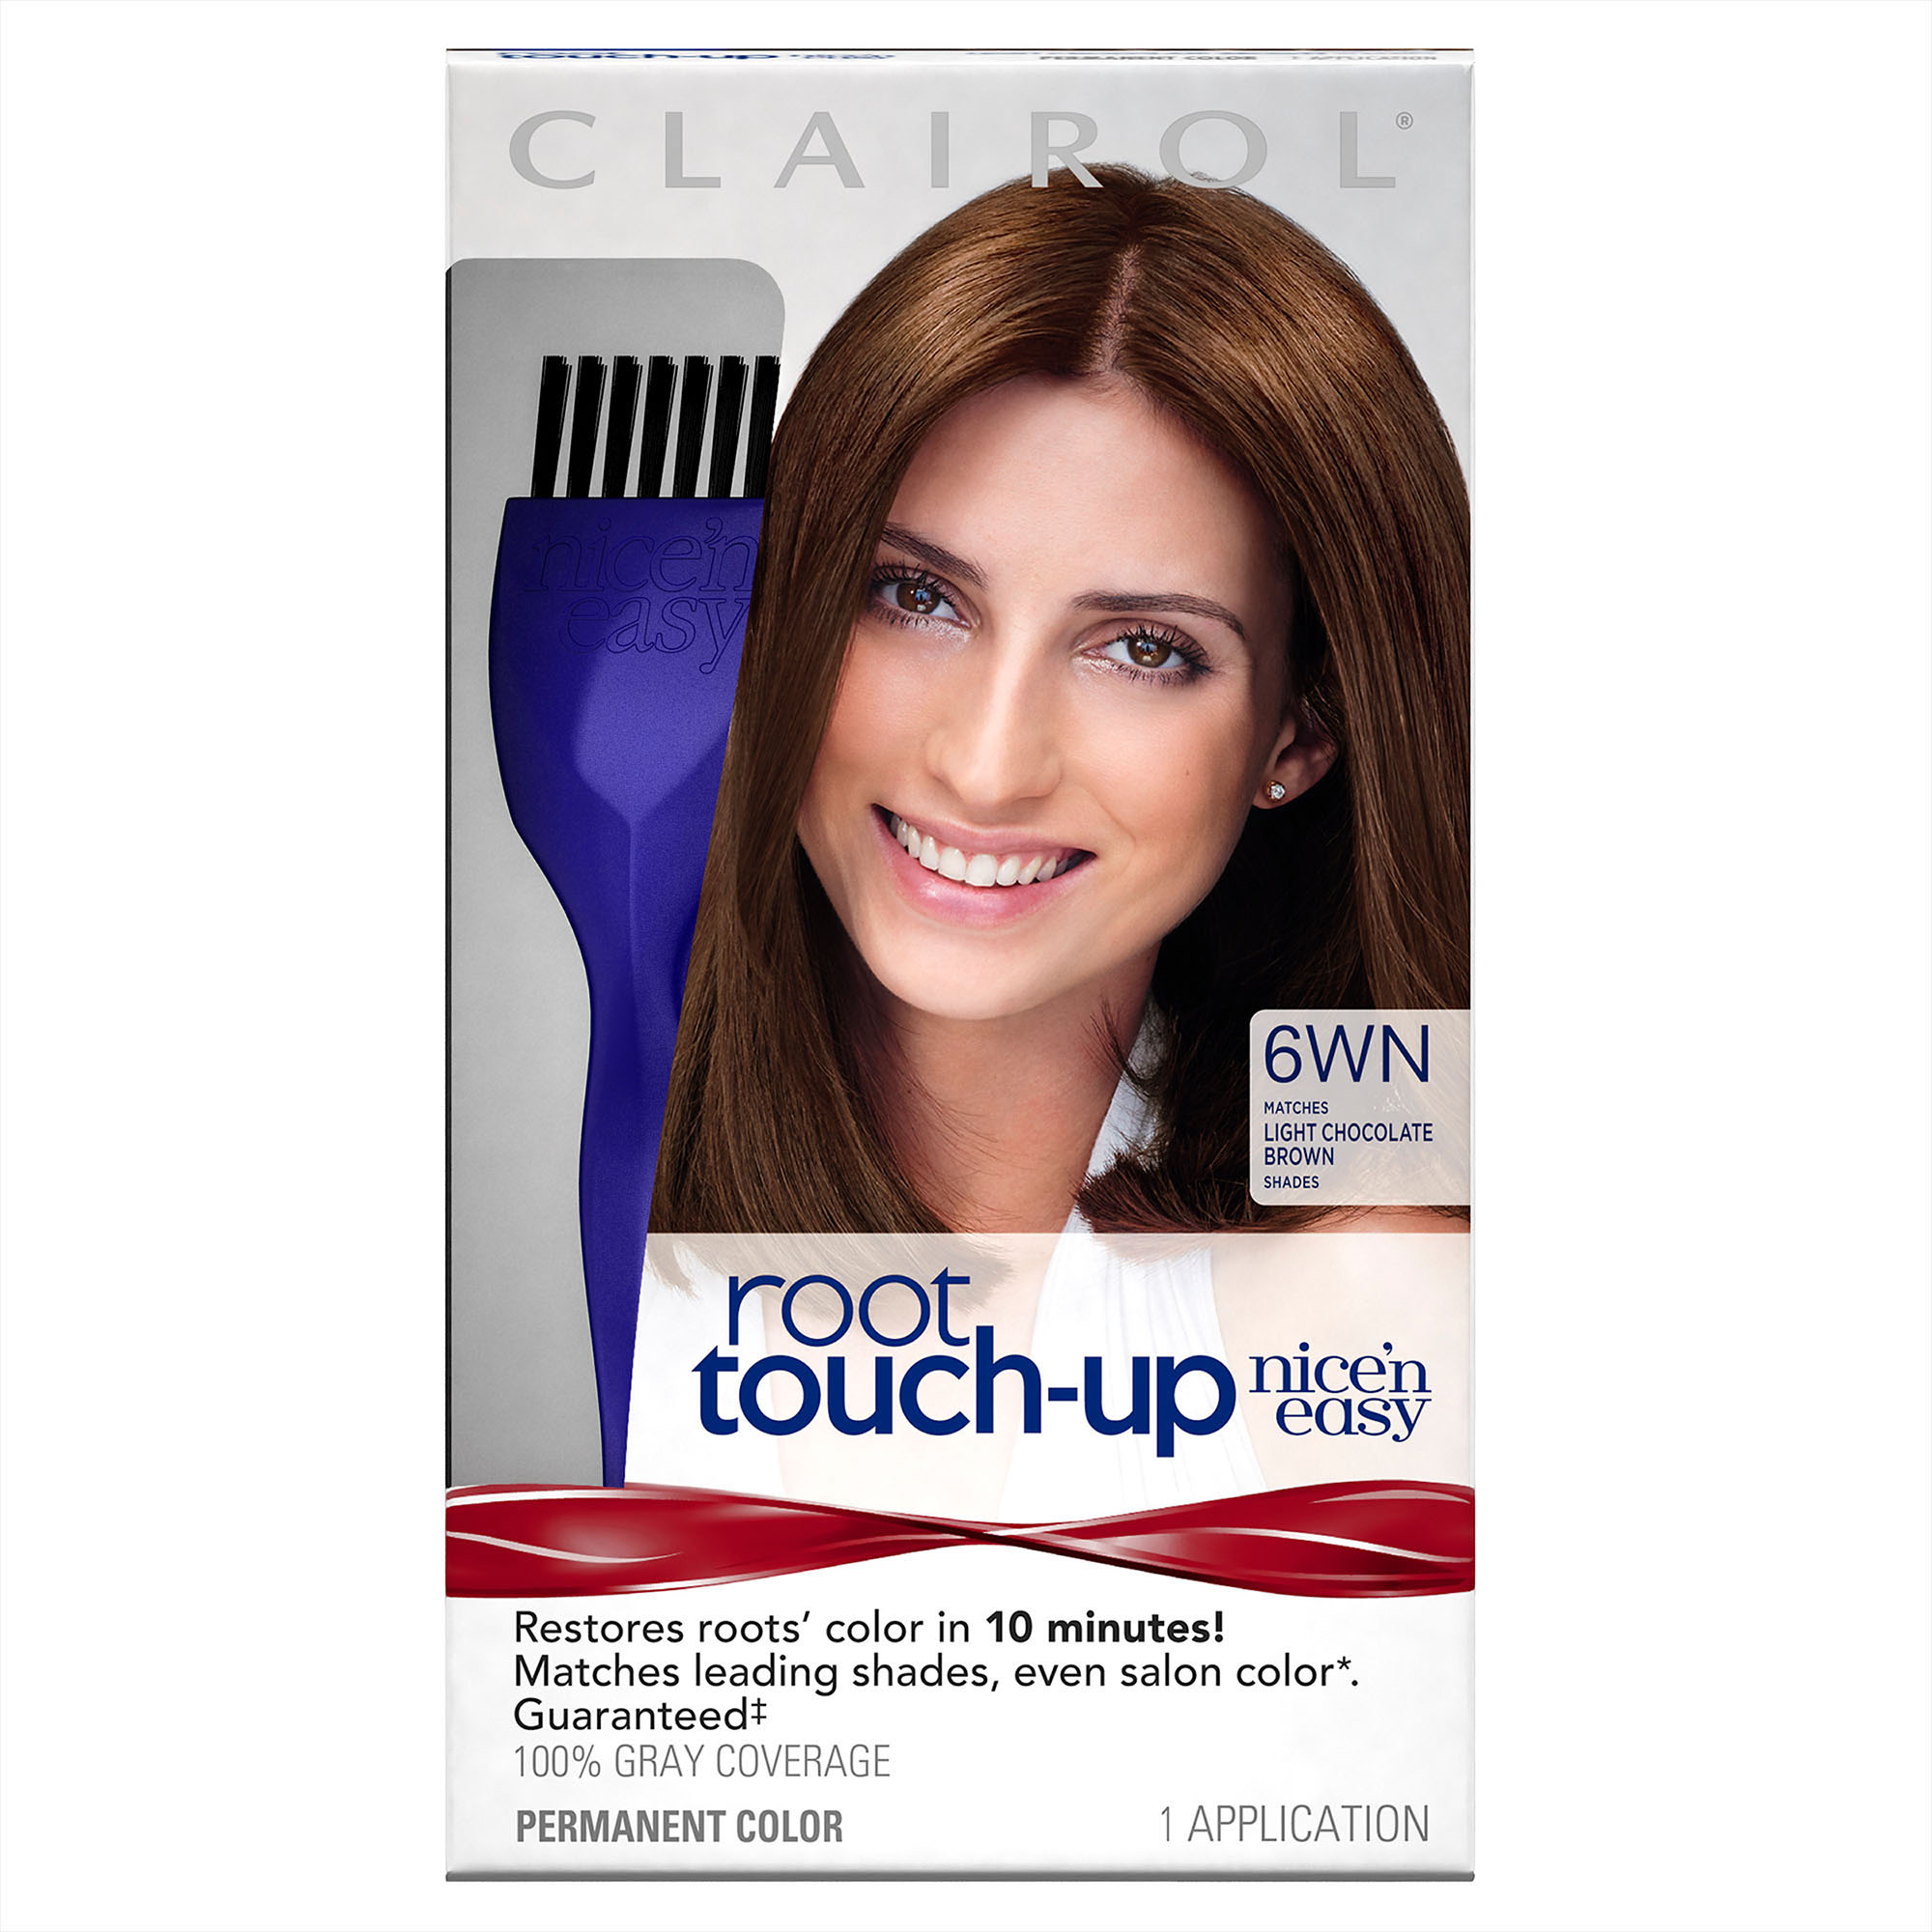 Clairol Nicen Easy Root Touch Up 6wn Light Chocolate Brown